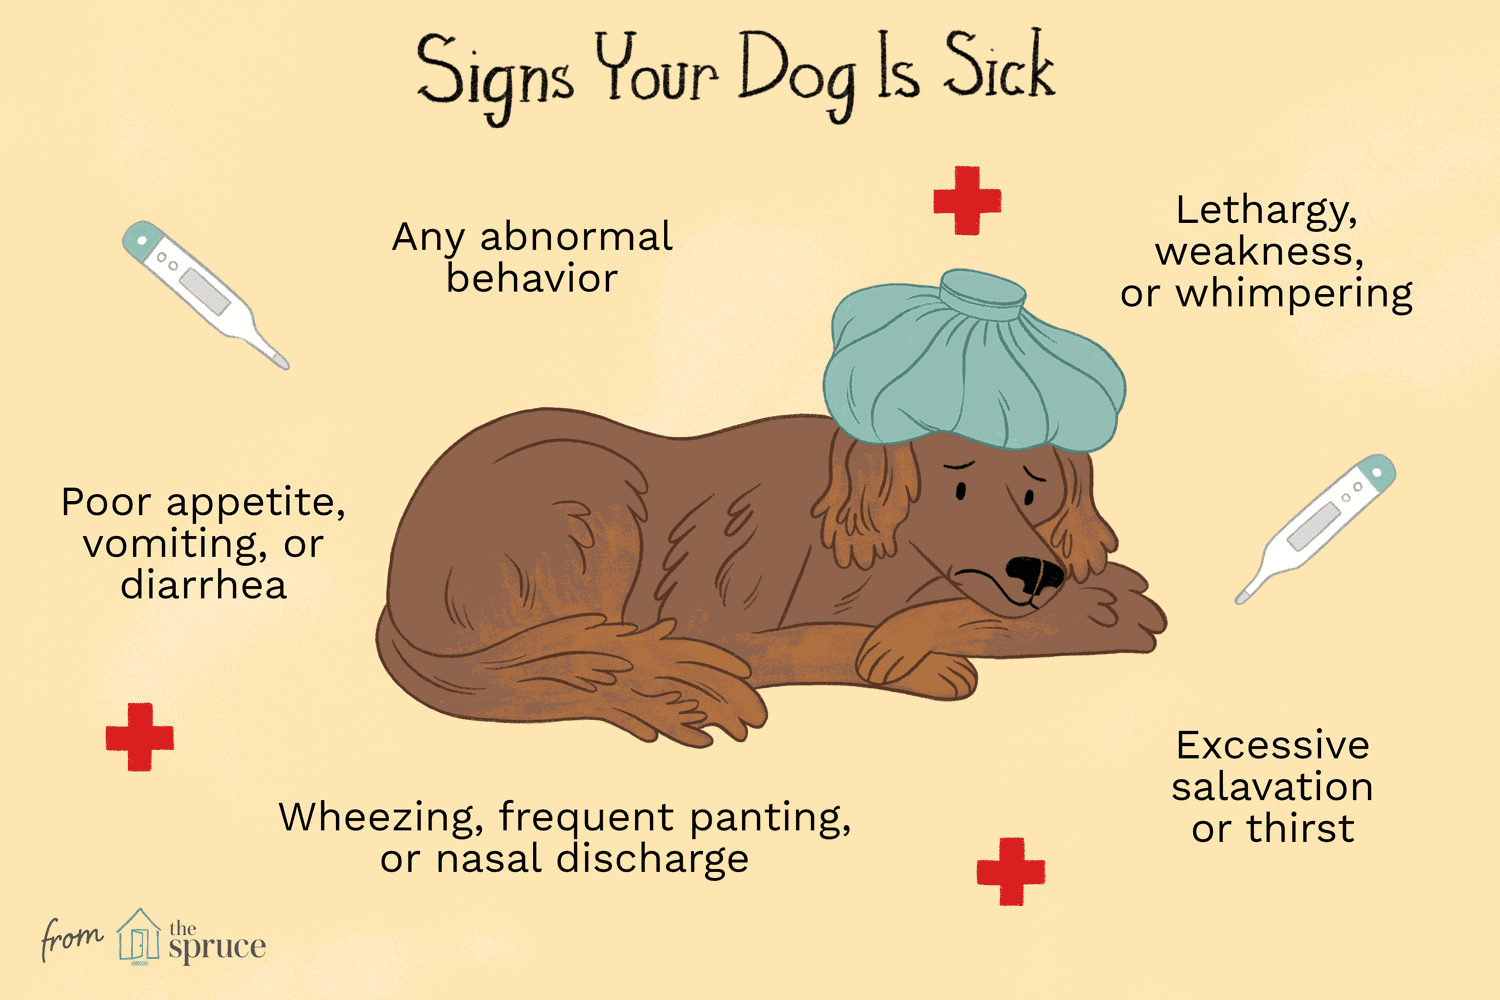 Signs of Illness in Dogs